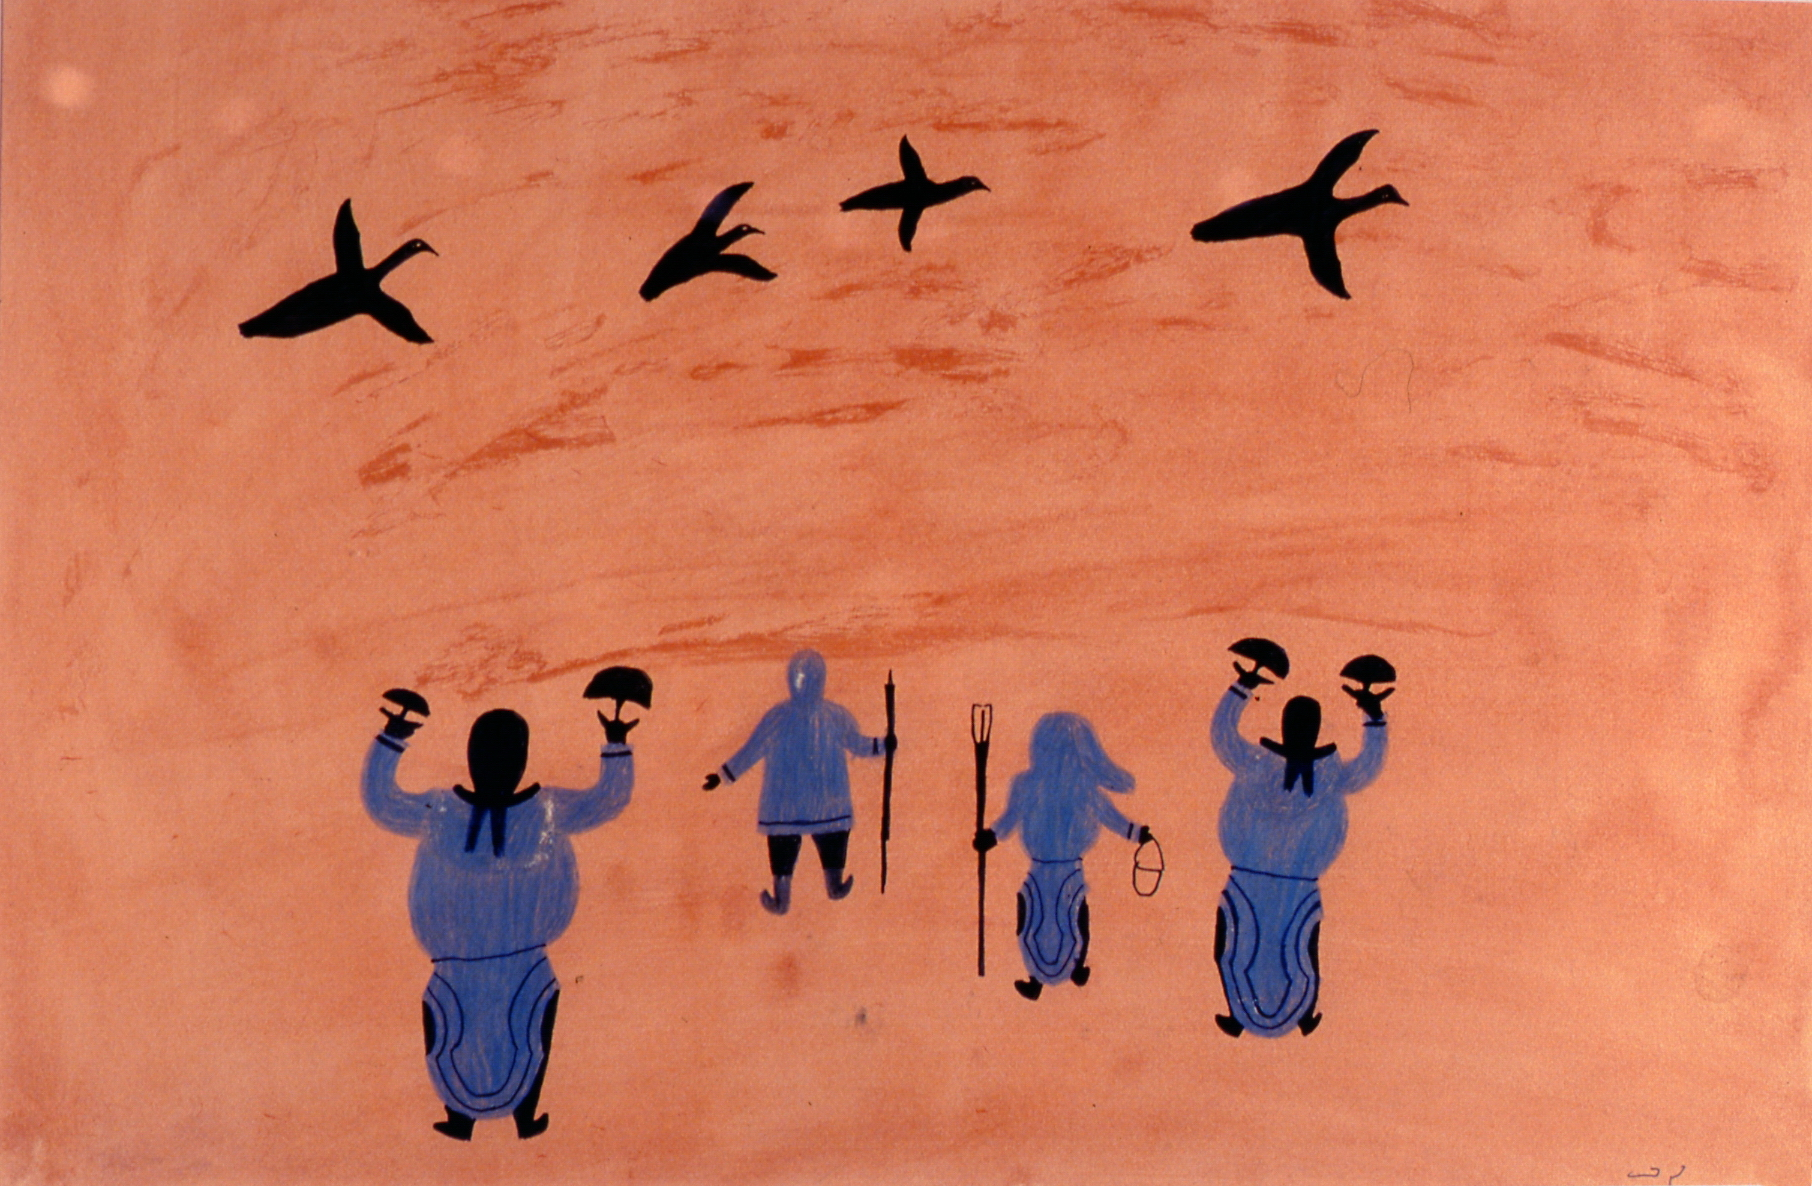 Figures and Birds , 1977/78, Lucy Quinnuakuak, acrylic and crayon on paper, 38 cm x 56 cm, 2003.06.01, gift of Mrs. Rosita Tovell